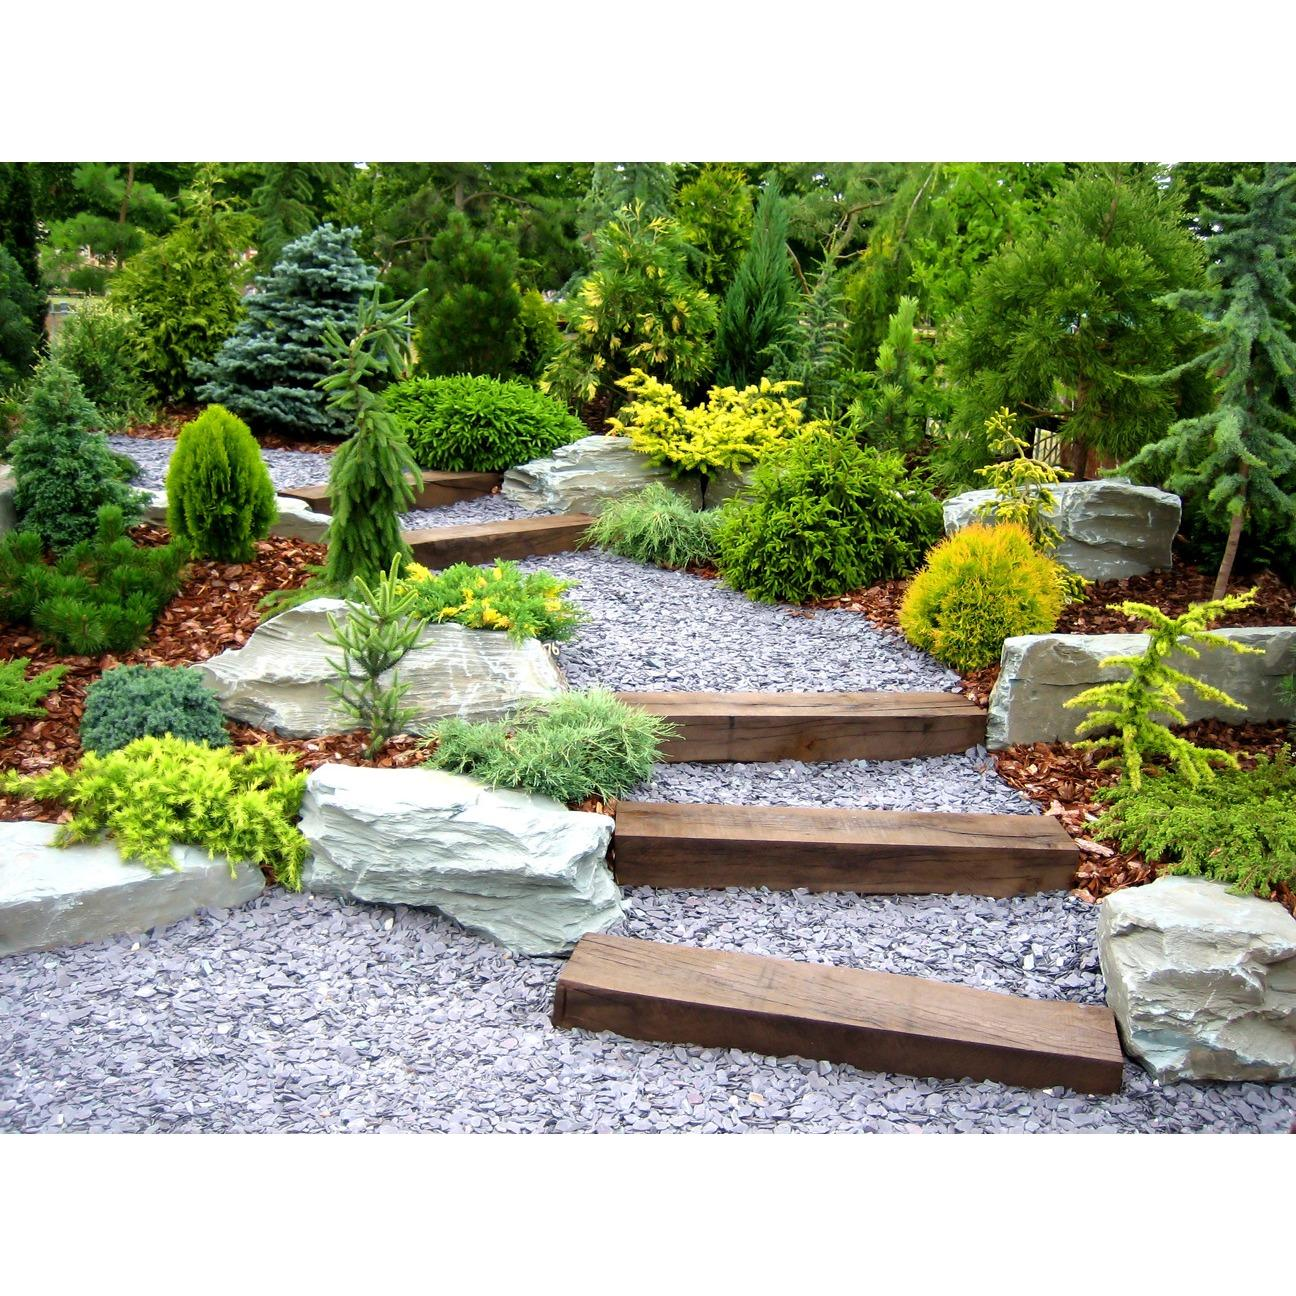 ITM Landscaping LLC - Denver, CO - Landscape Architects & Design